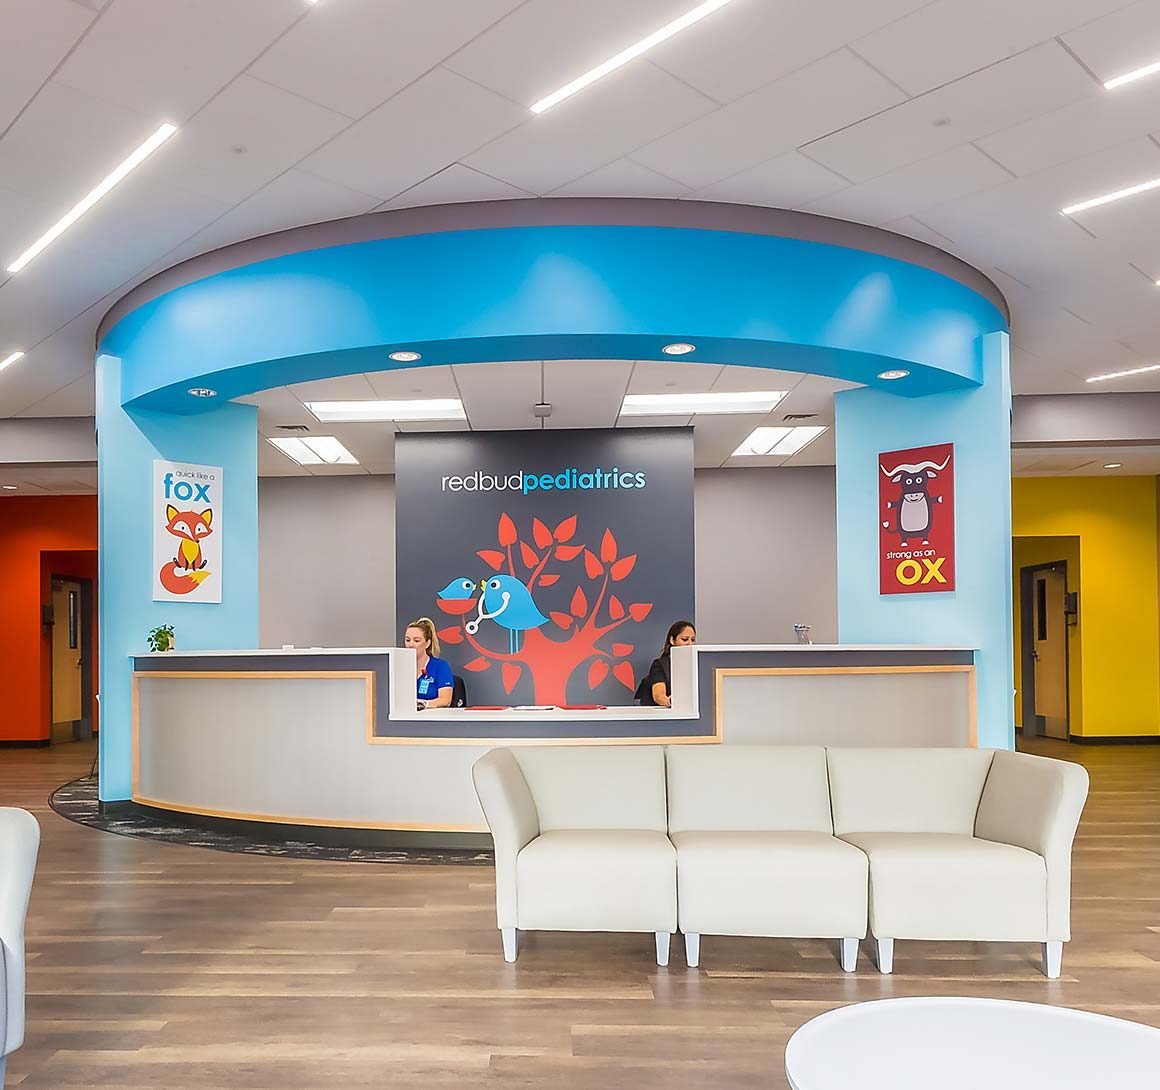 Redbud Pediatrics Wichita KS Contact And Location Information